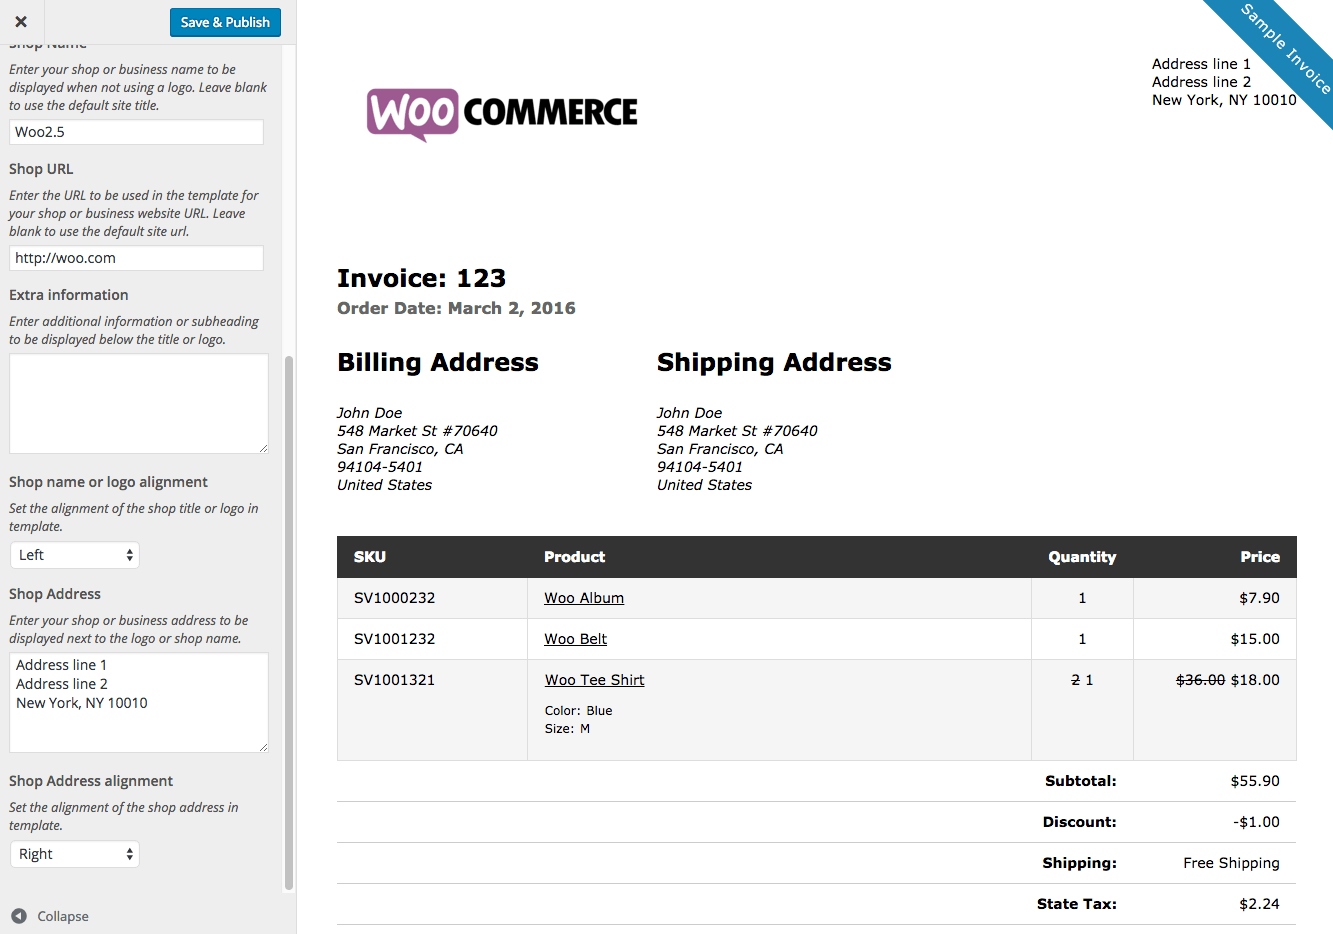 Usdgus  Surprising Woocommerce Print Invoices Amp Packing Lists  Woocommerce Docs With Fetching Woocommerce Print Invoices  Packing Lists Customizer With Beautiful How To Right An Invoice Also  Mazda Invoice Price In Addition Invoice Template Download Excel And Gnucash Invoice Template As Well As Invoice Free Software Download Additionally Net  Days From Date Of Invoice From Docswoocommercecom With Usdgus  Fetching Woocommerce Print Invoices Amp Packing Lists  Woocommerce Docs With Beautiful Woocommerce Print Invoices  Packing Lists Customizer And Surprising How To Right An Invoice Also  Mazda Invoice Price In Addition Invoice Template Download Excel From Docswoocommercecom